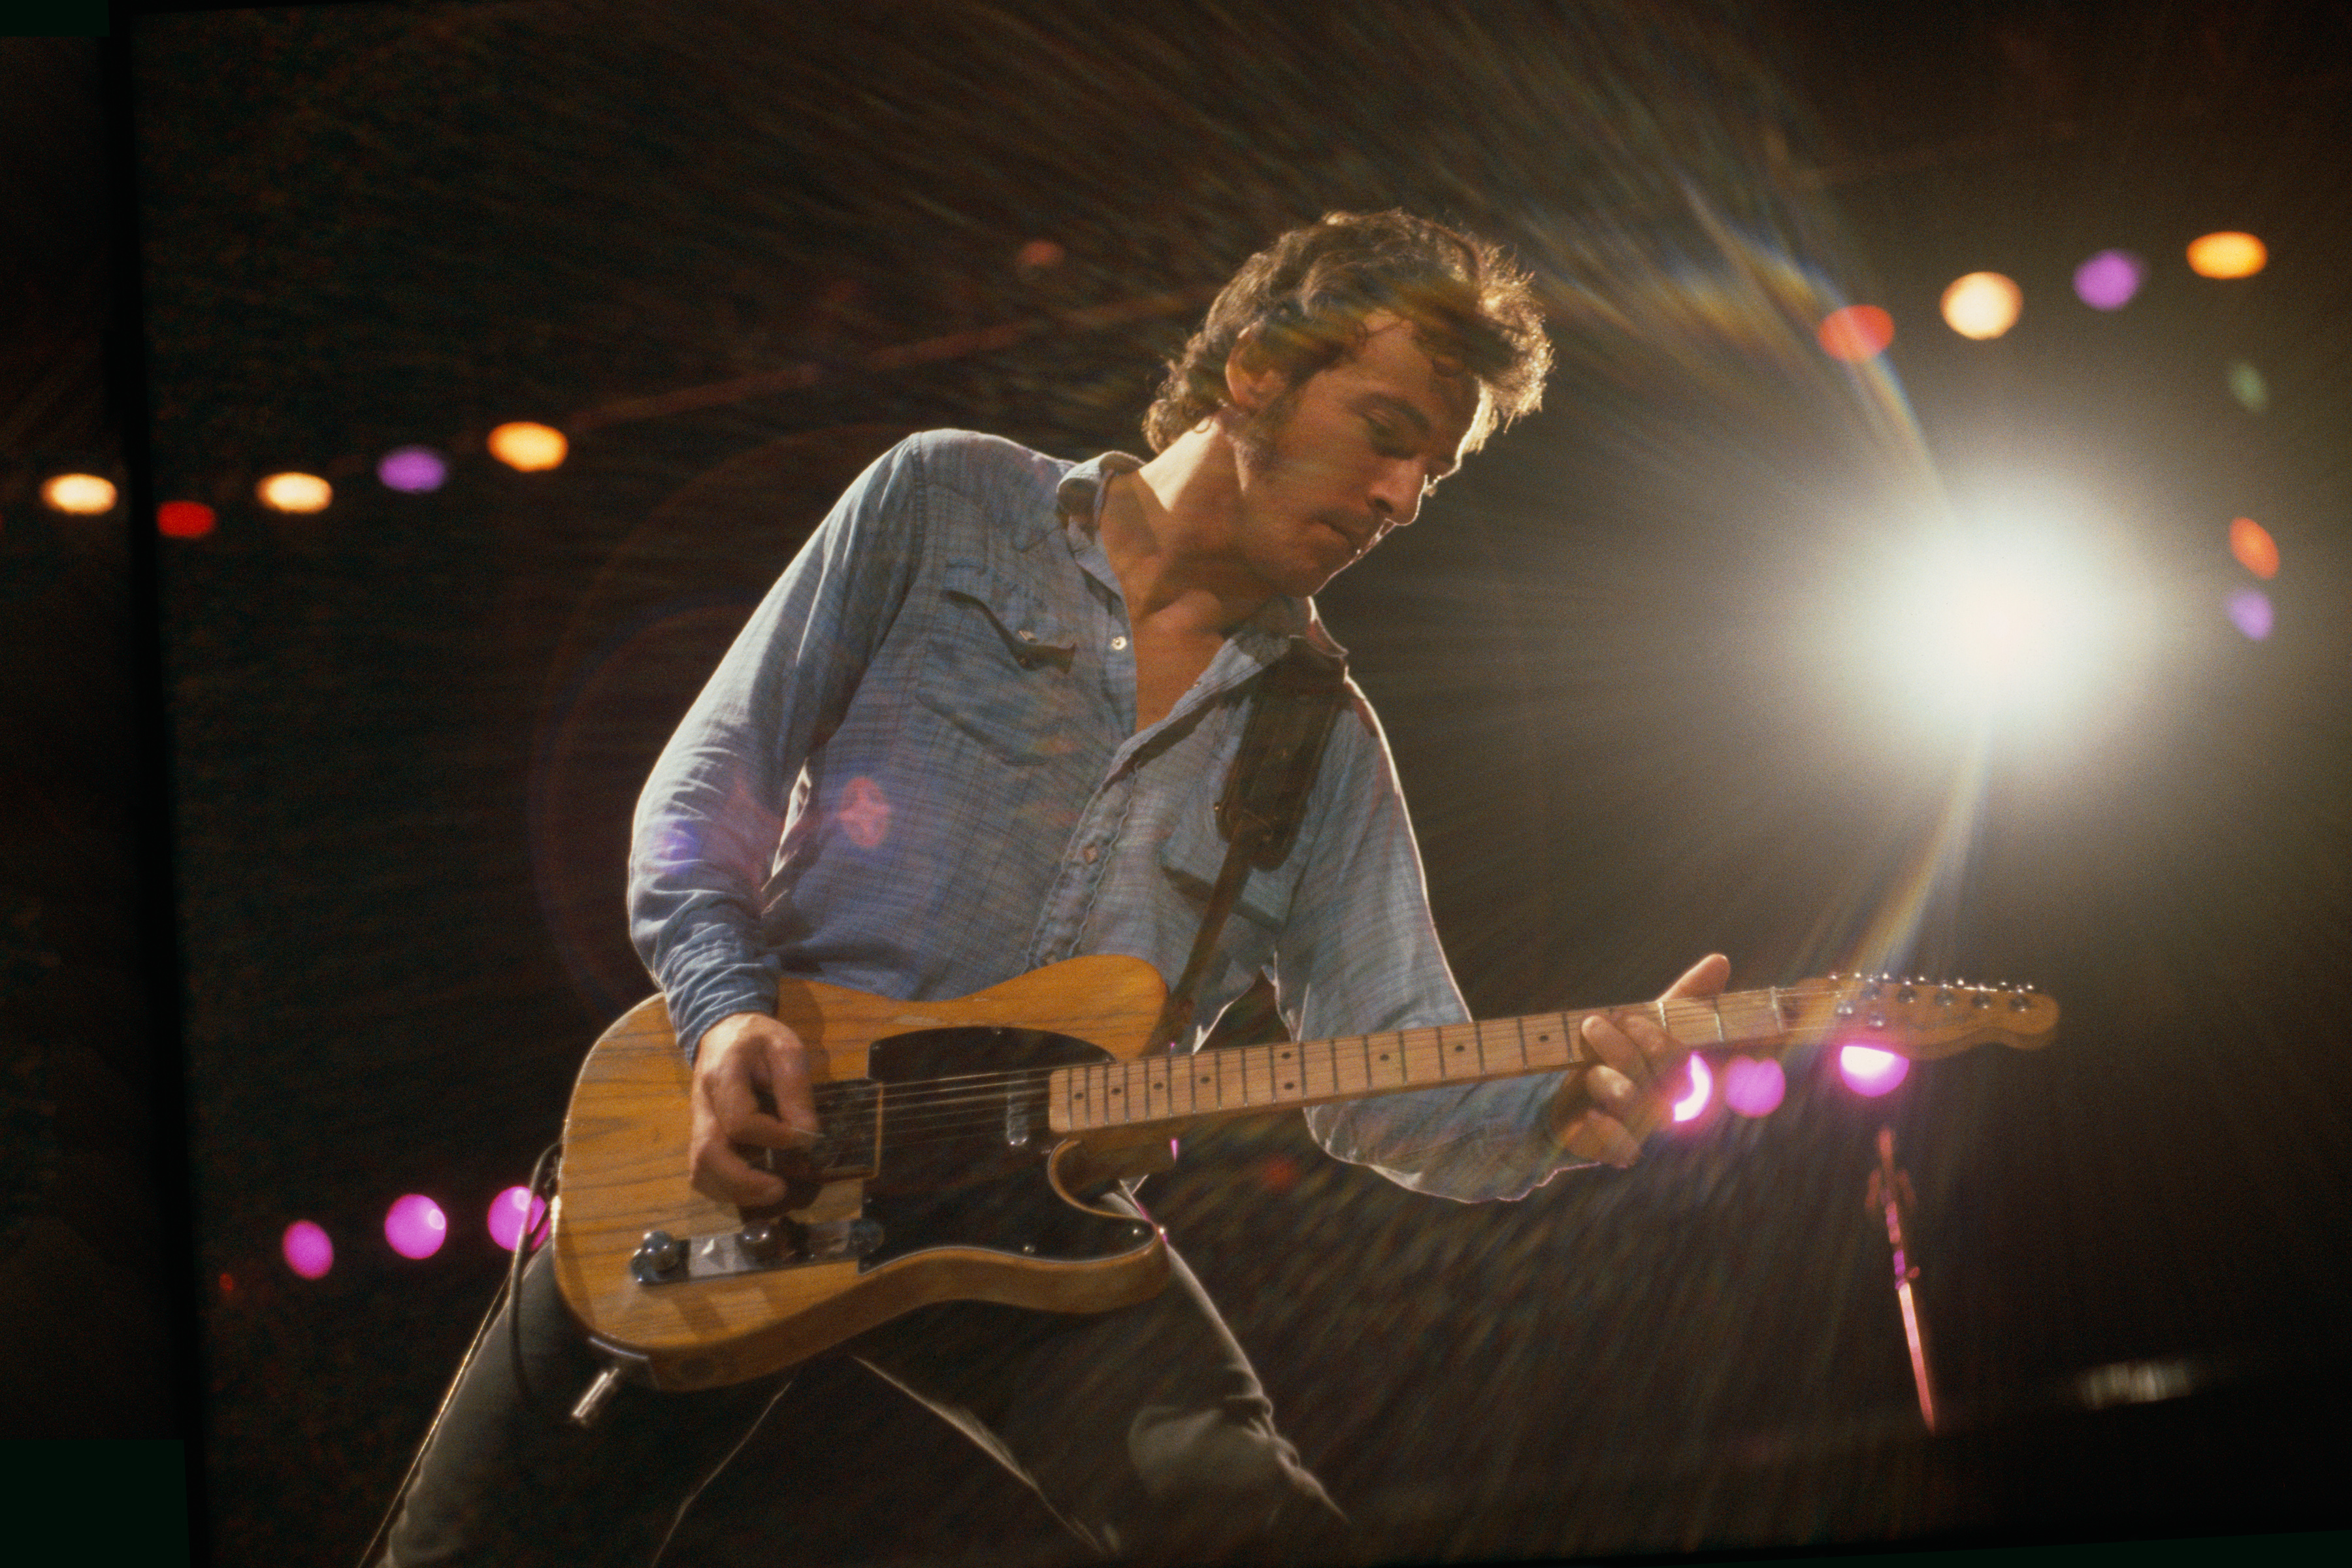 Bruce Springsteen performs at Oakland Coliseum in Oakland, Calif., Oct. 1980.